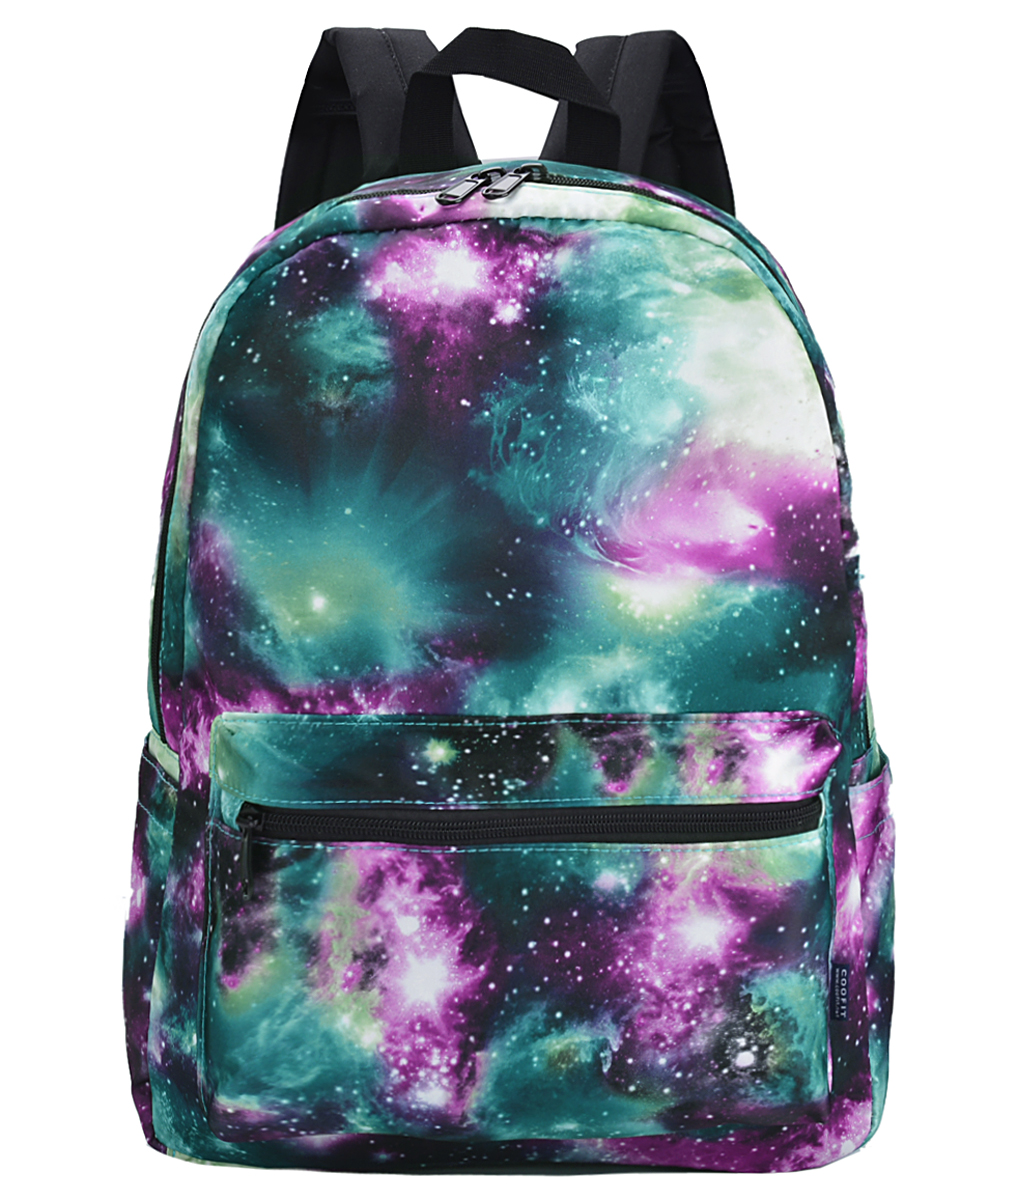 Coofit - Starry Sky Backpack, Unisex Cool